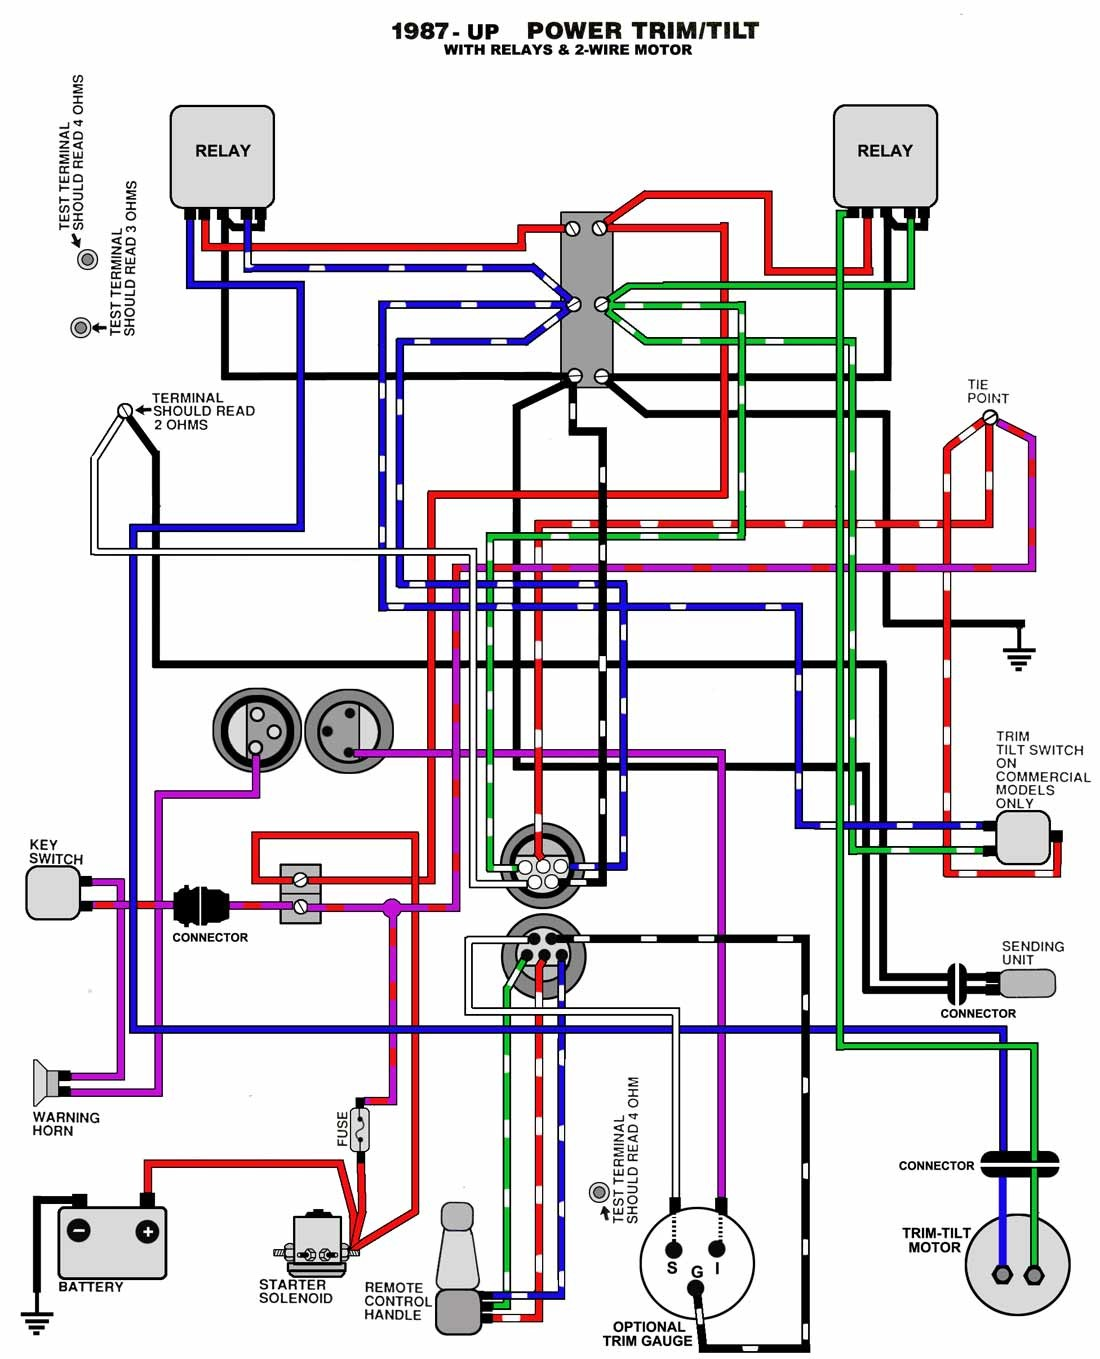 Mercury outboard wiring diagram ignition switch inspirational wiring diagram mercury 115 hp outboard lvcswop prepossessing ignition switch asfbconference2016 Image collections